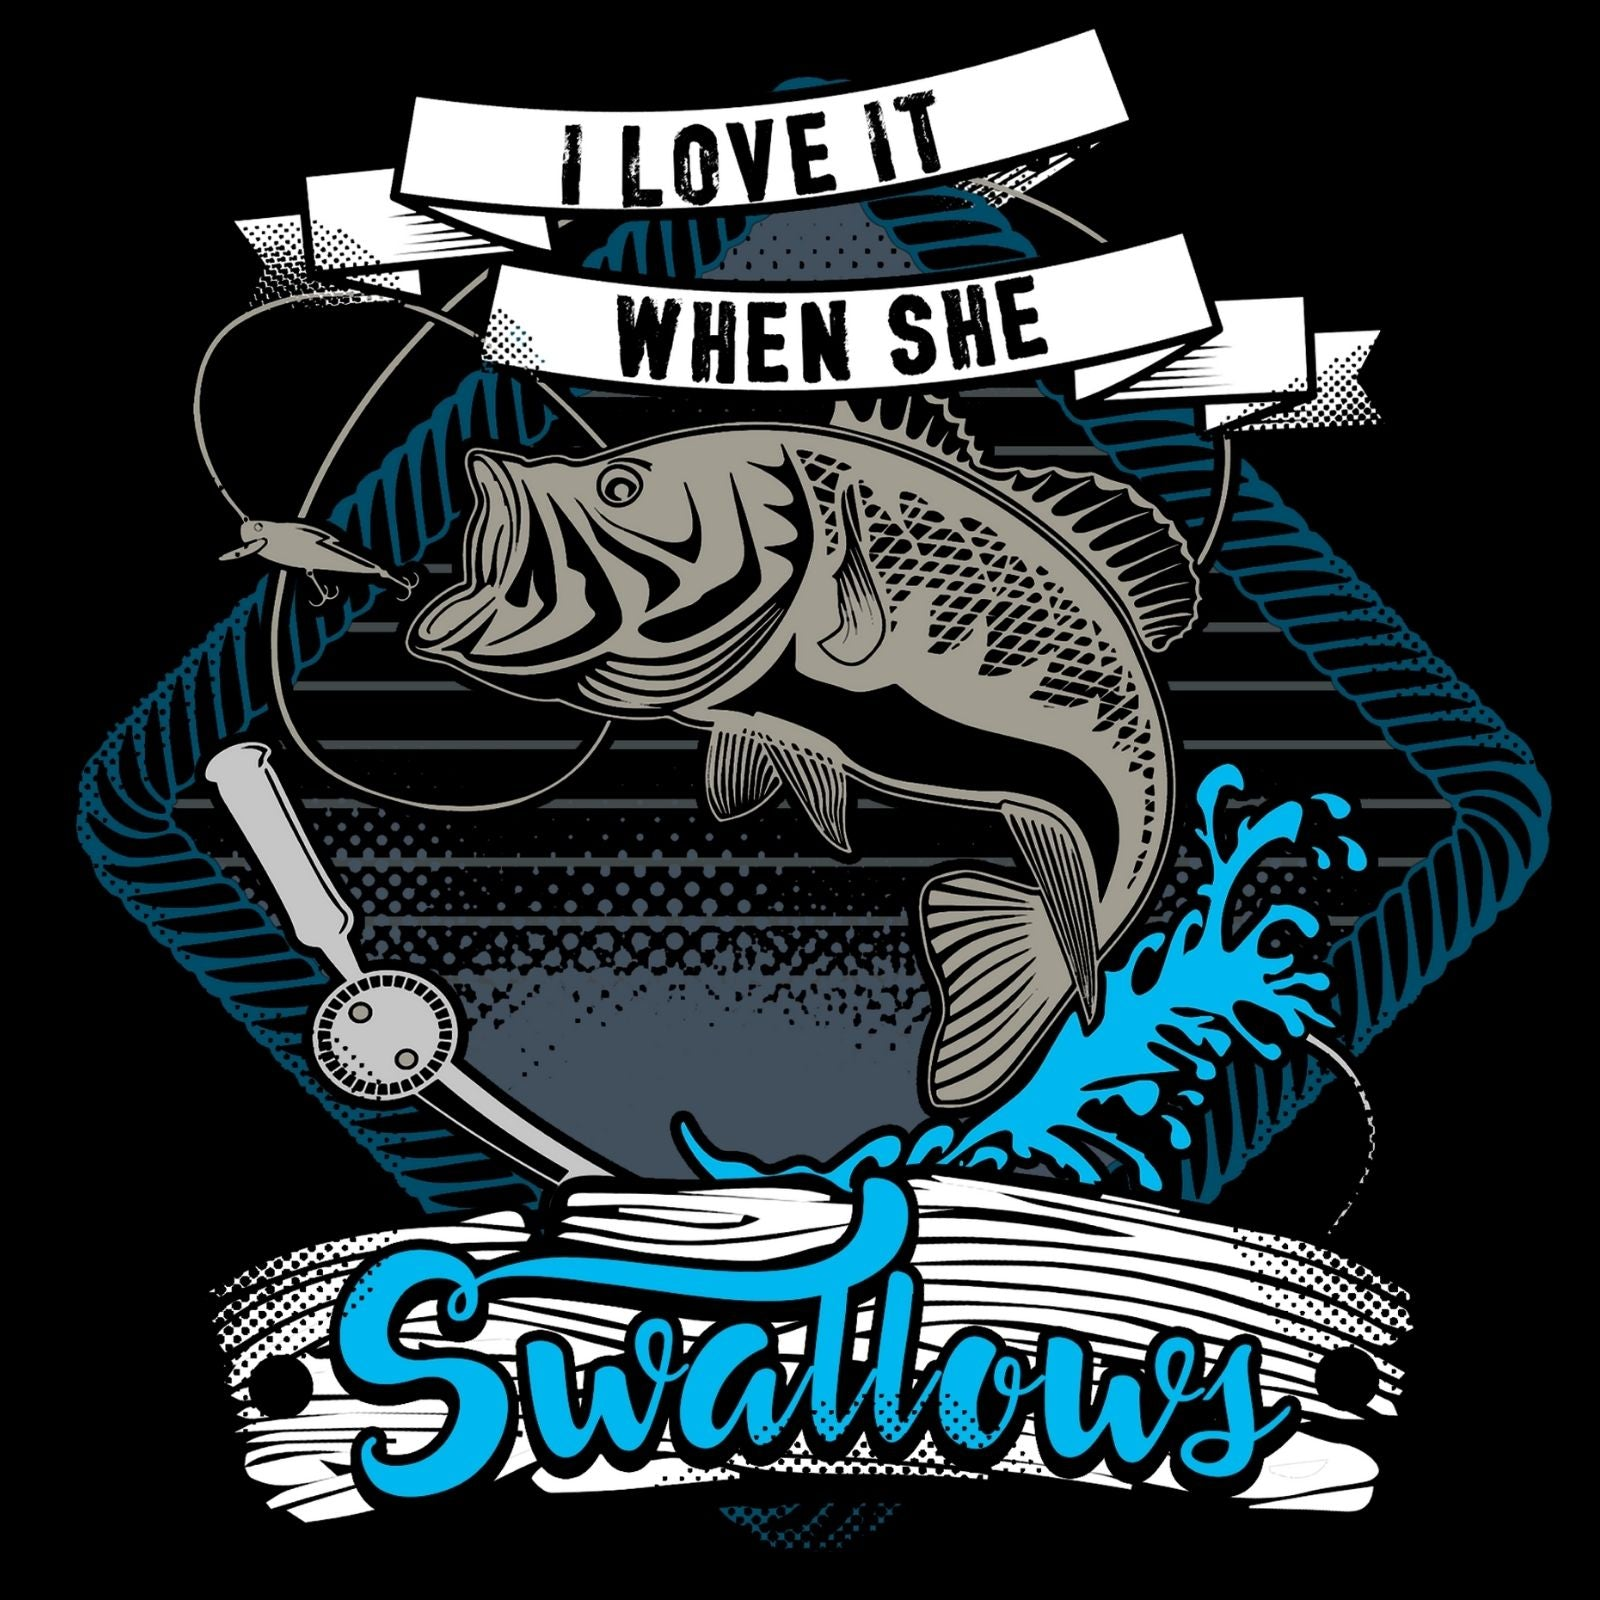 I Love It When She Swallows - Bastard Graphics